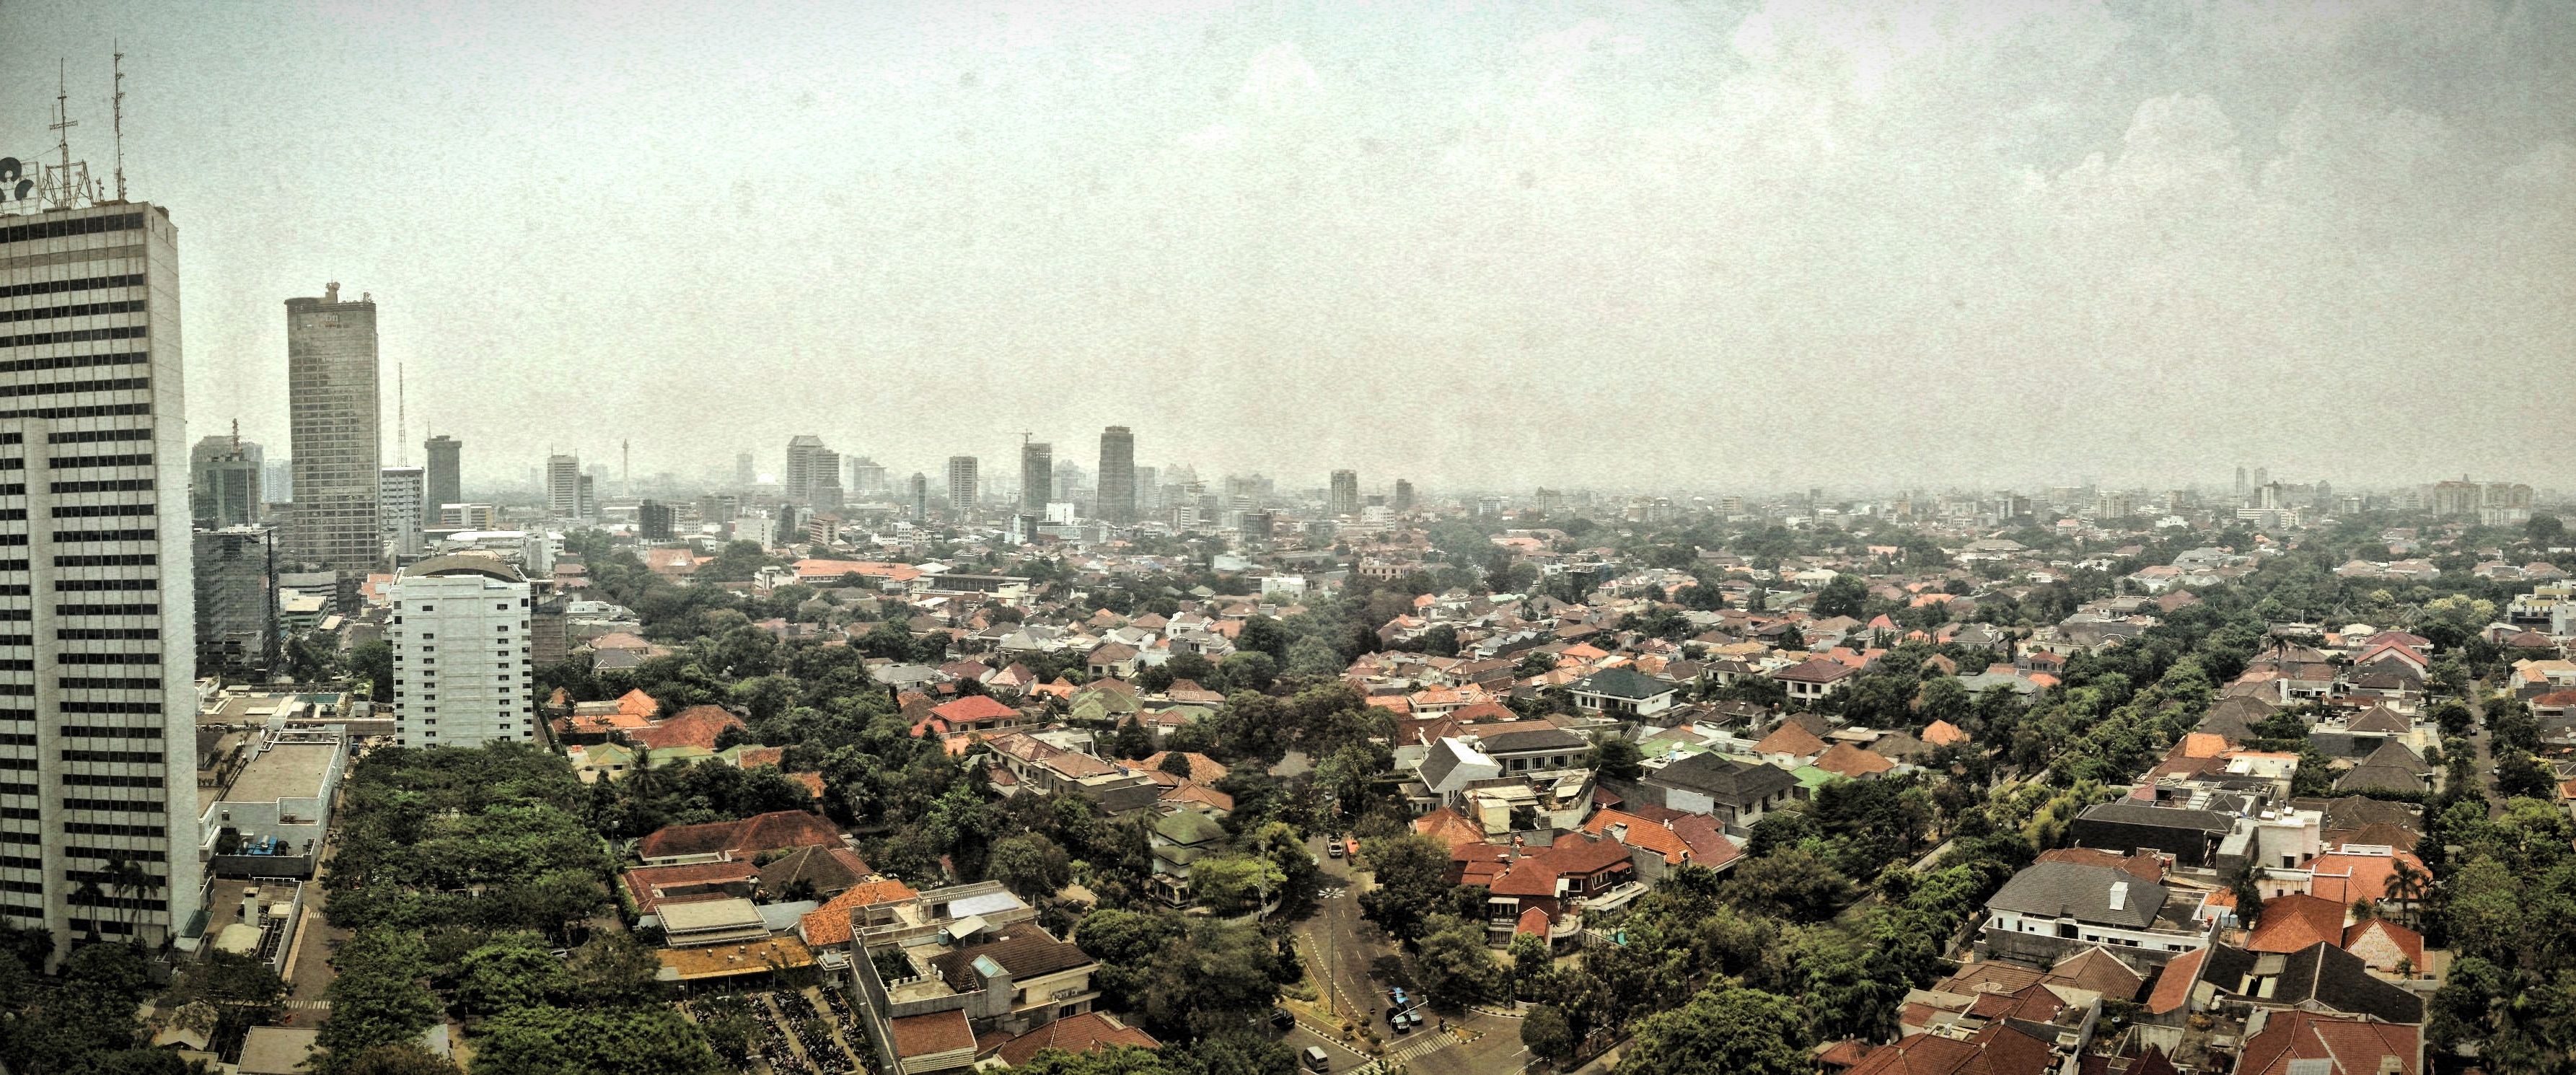 A view from the Deutsche Bank building, Central Jakarta